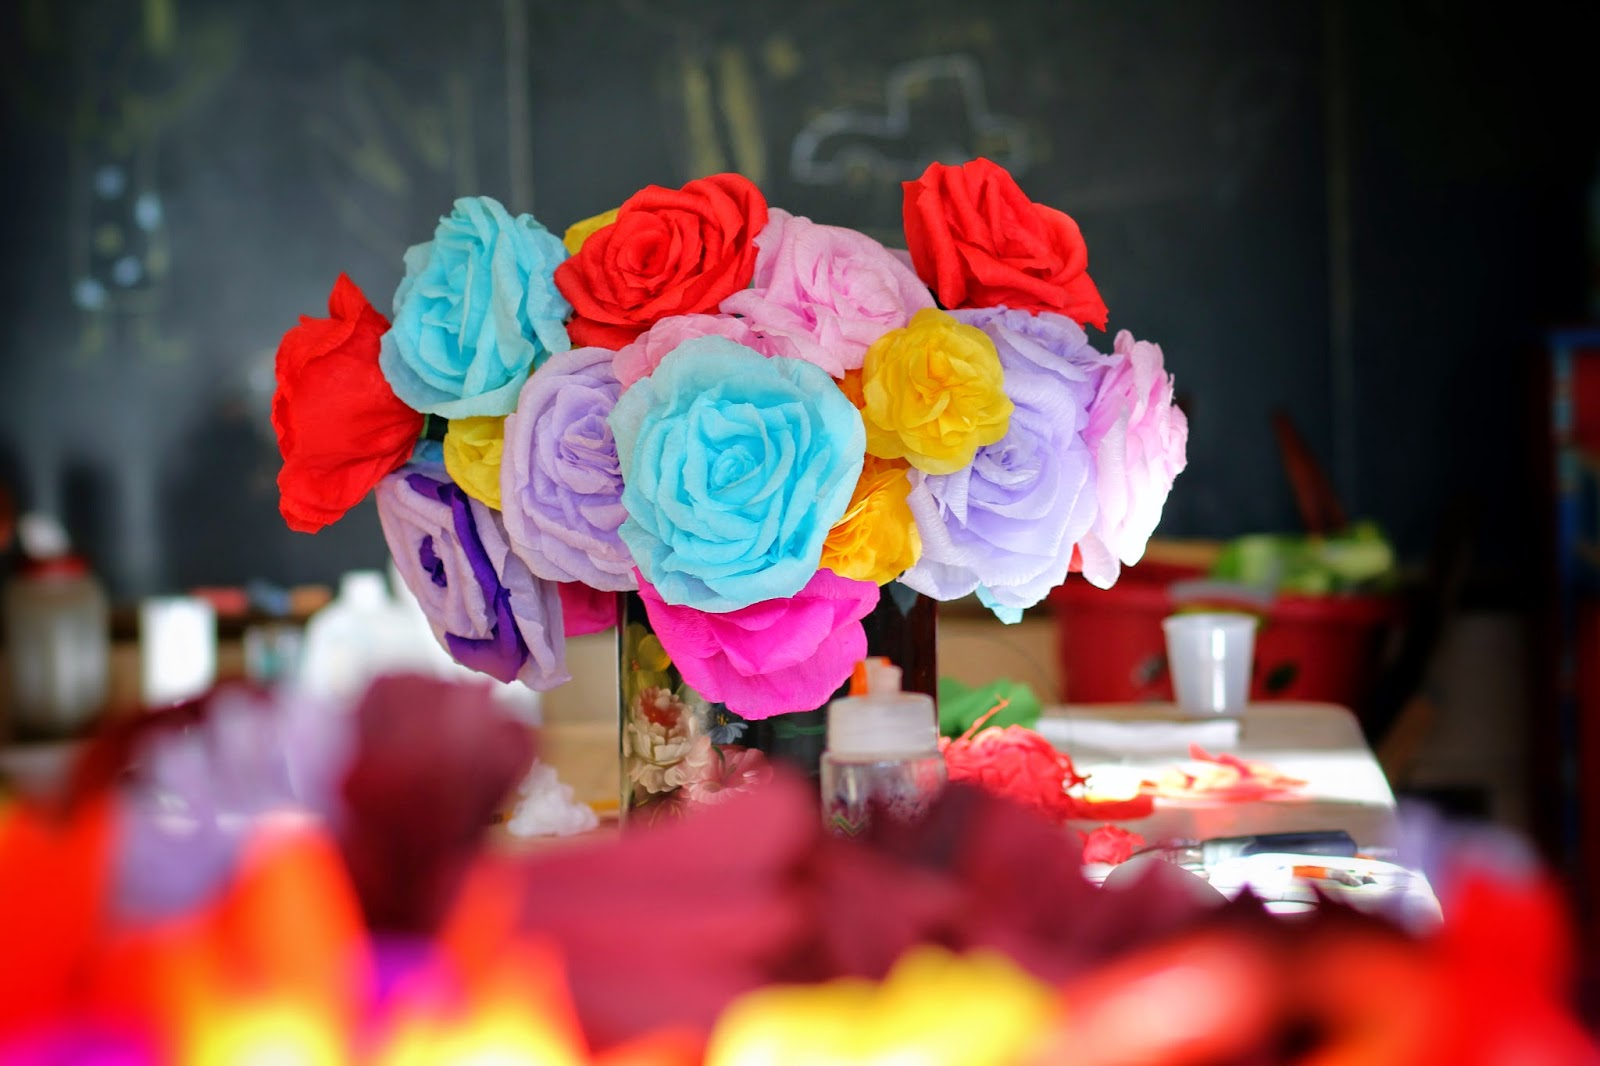 Salvation Sisters Papel De China Making A Variety Of Paper Flowers